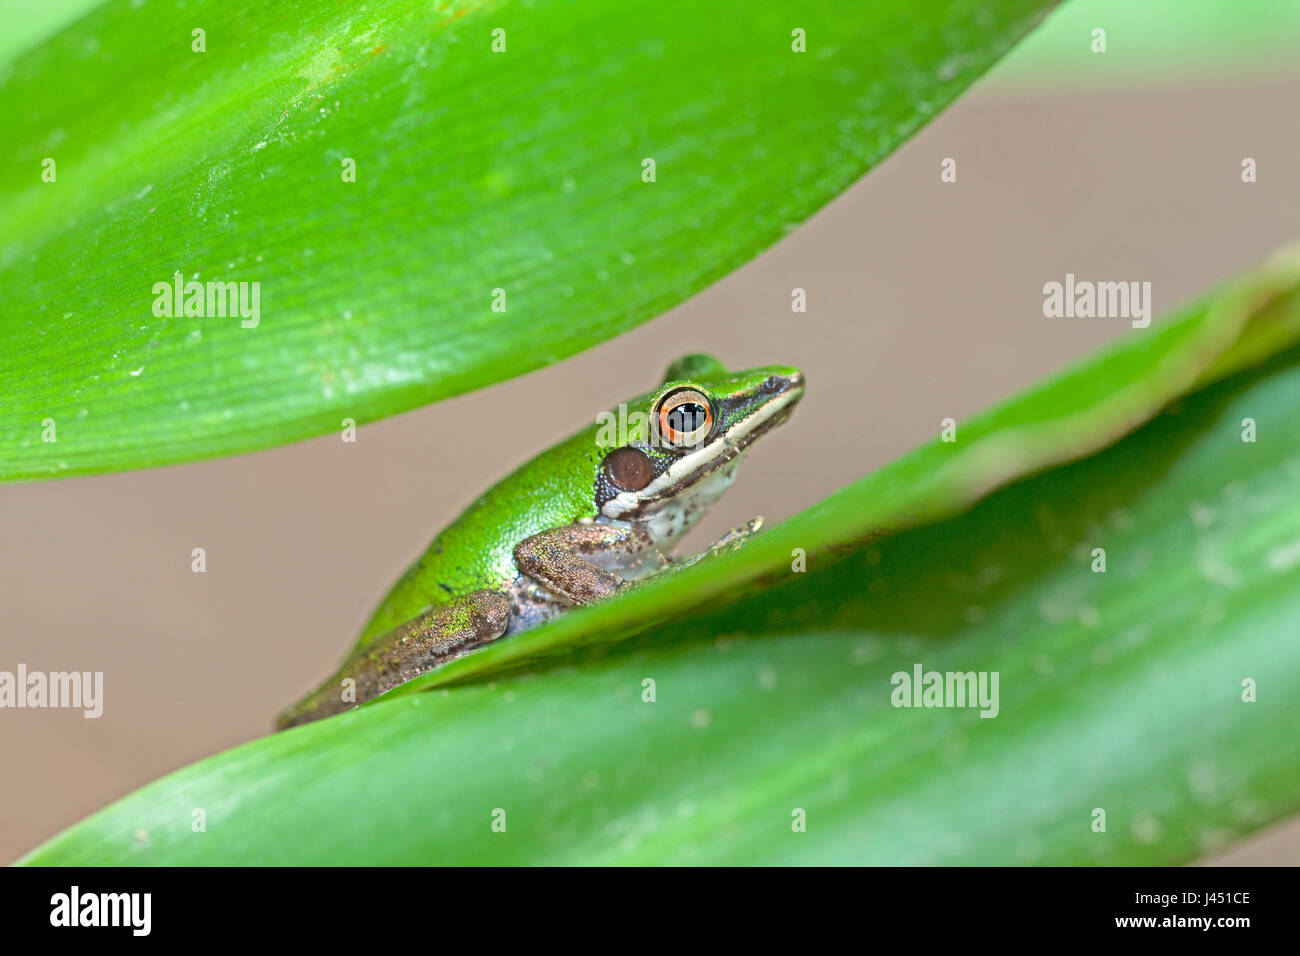 photo of a copper cheeked frog on a leaf - Stock Image